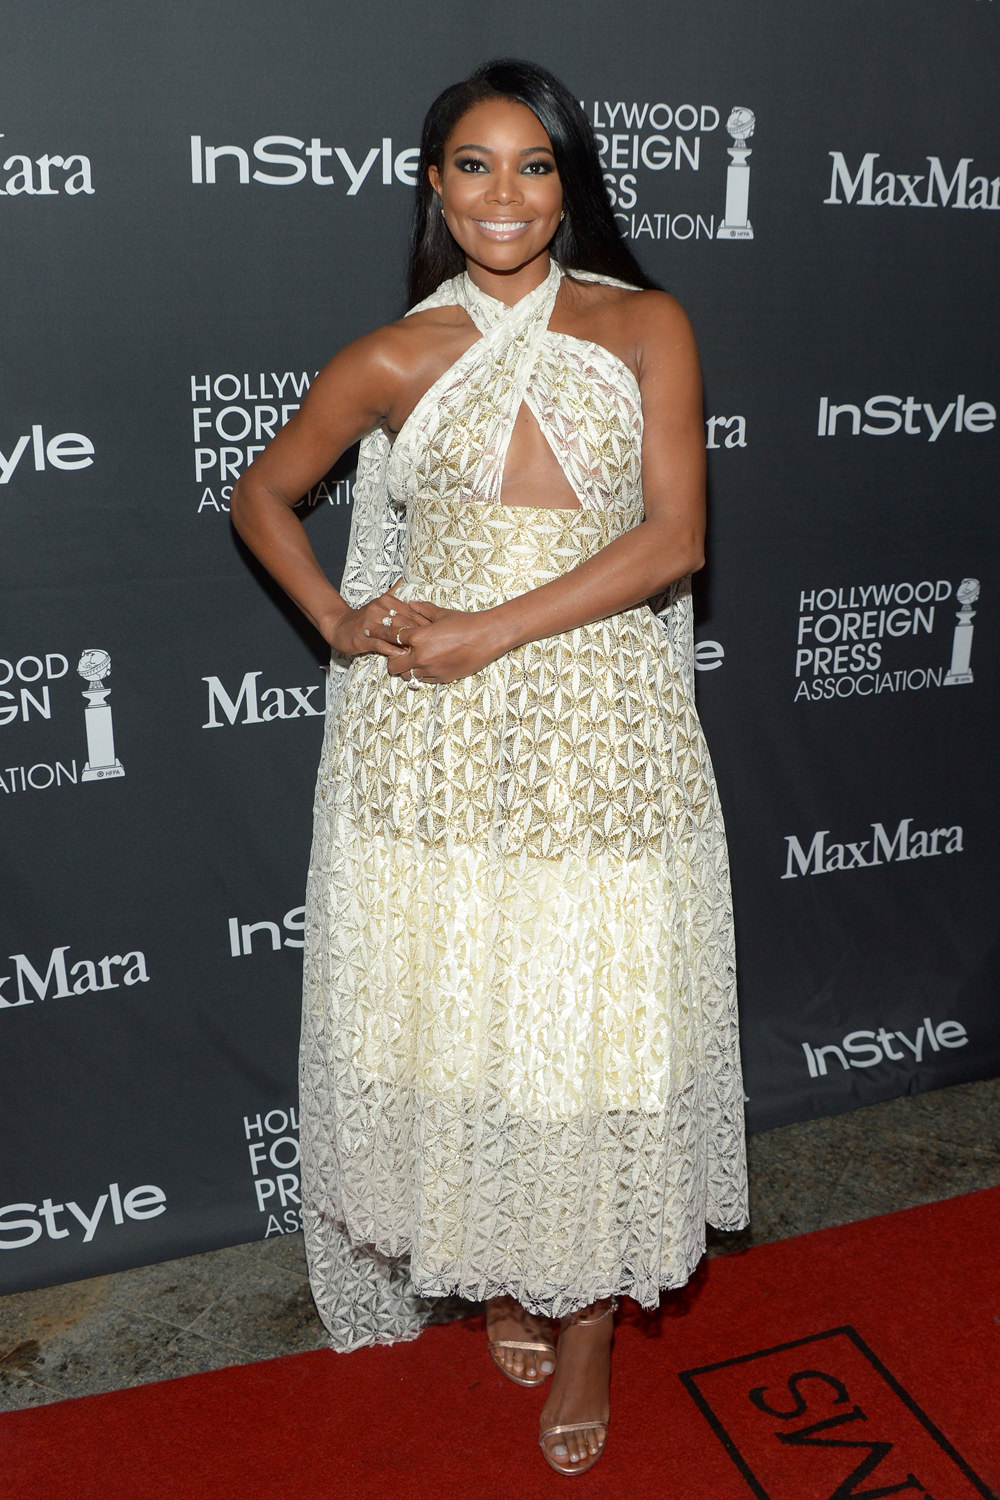 gabrielle-union-tiff-2016-instyle-party-2016-red-carpet-fashion-sophie-theallet-tom-lorenzo-site-1